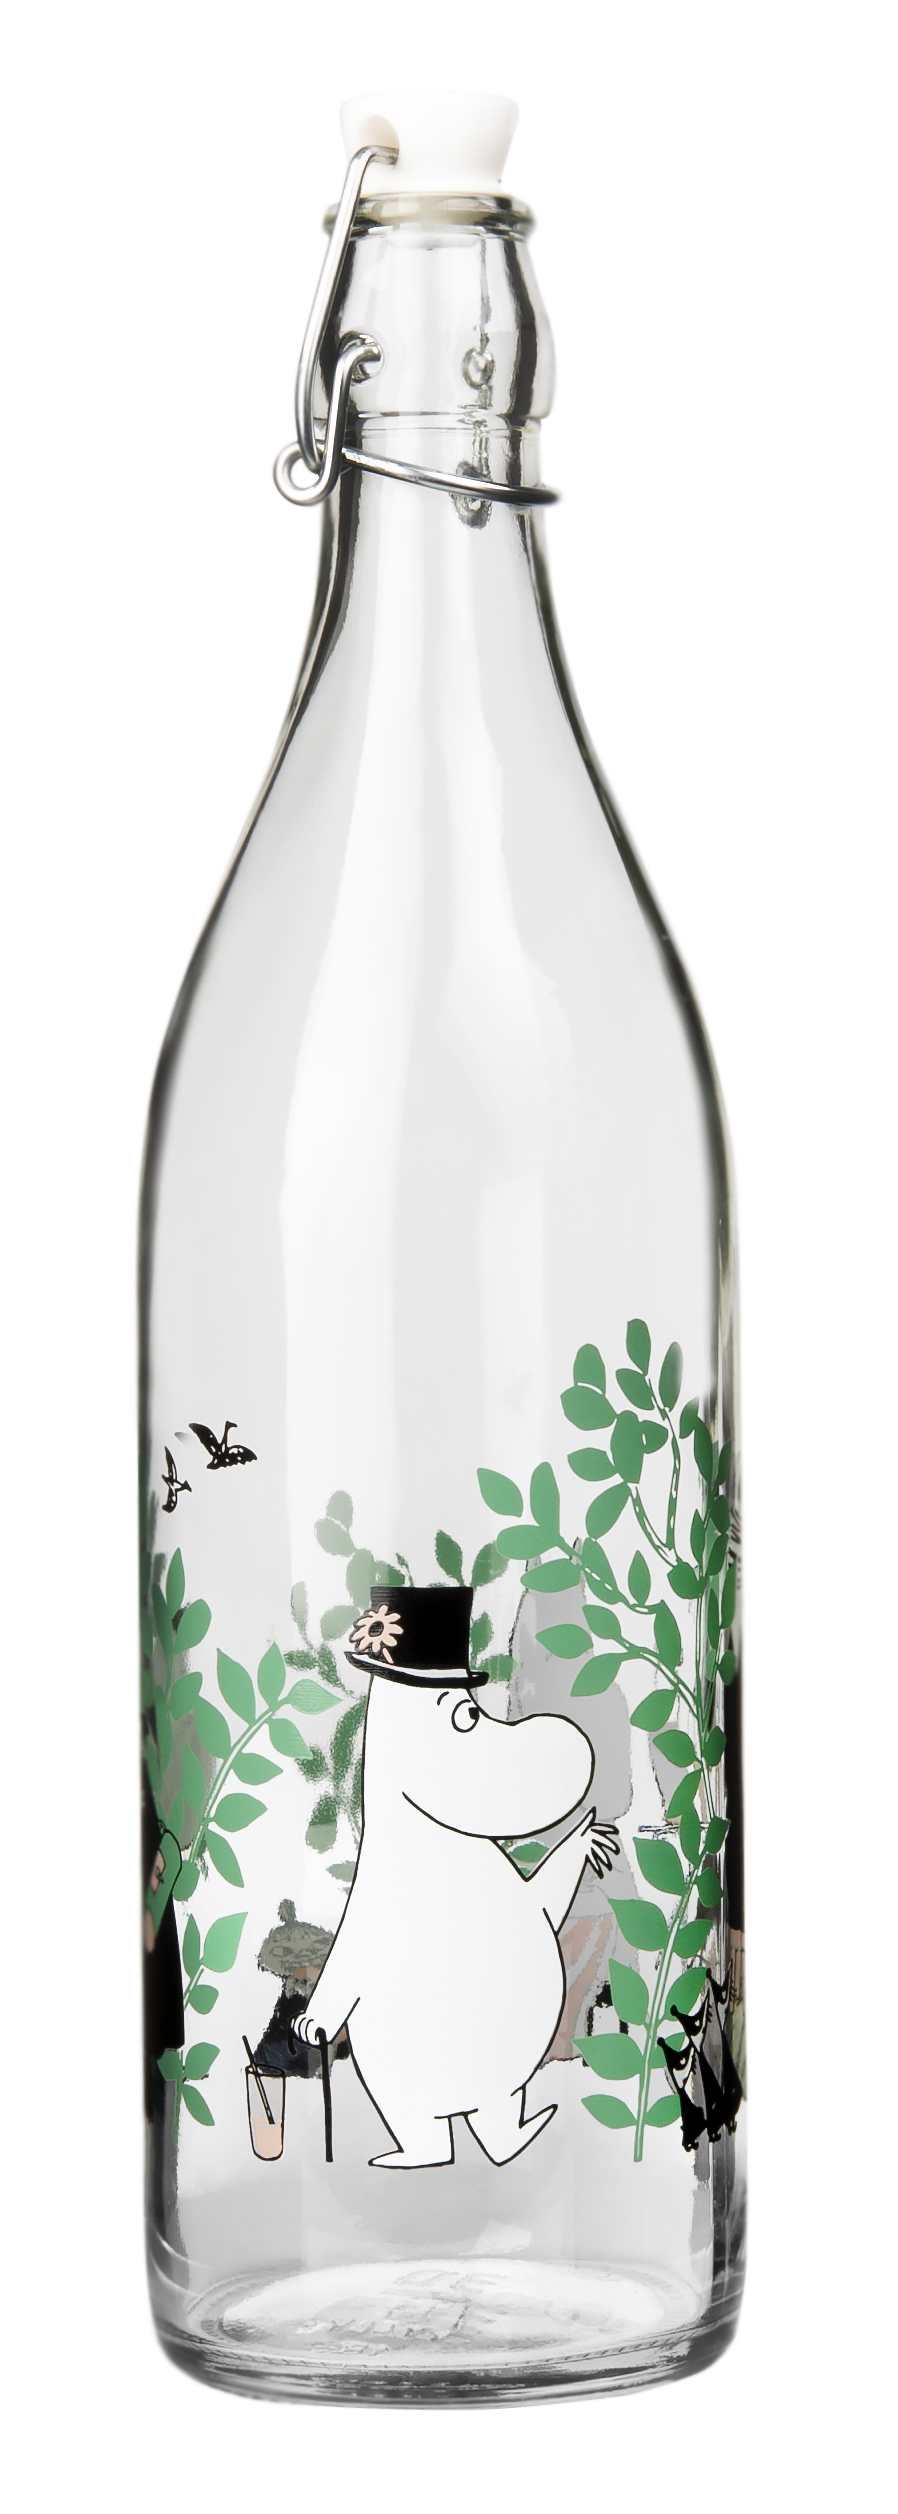 Muurla Moomin Garden - Day in the garden glass bottle 1 L